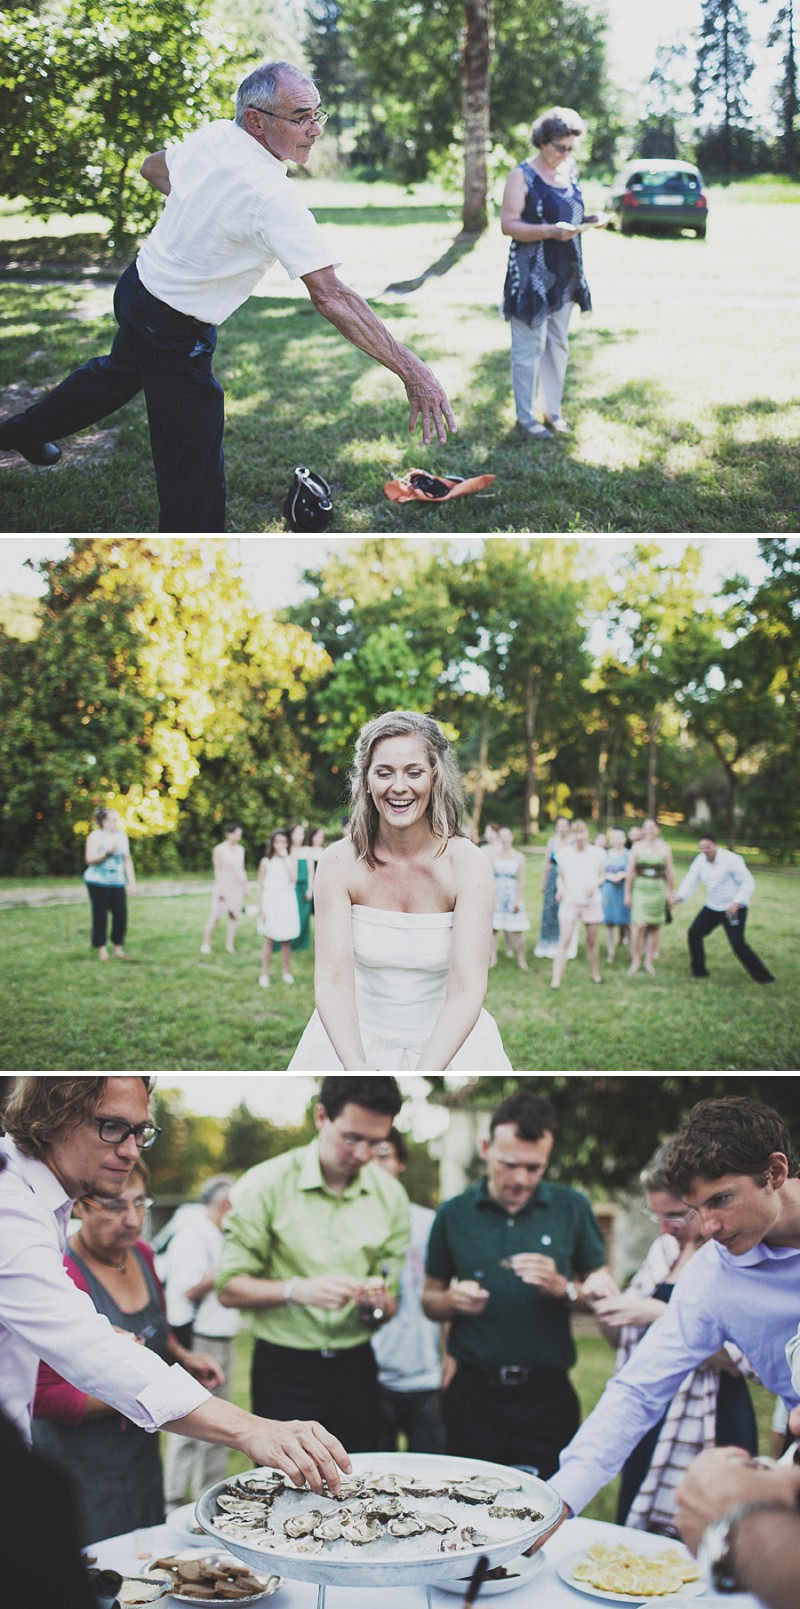 A Beautiful Rustic French Destination Wedding At Rivière de Prats In Gironde With A Rosa Clara Wedding Dress And A Pink Rose Bouquet And An Oyster And Cocktail Buffet By Anna Hardy Photography._0009